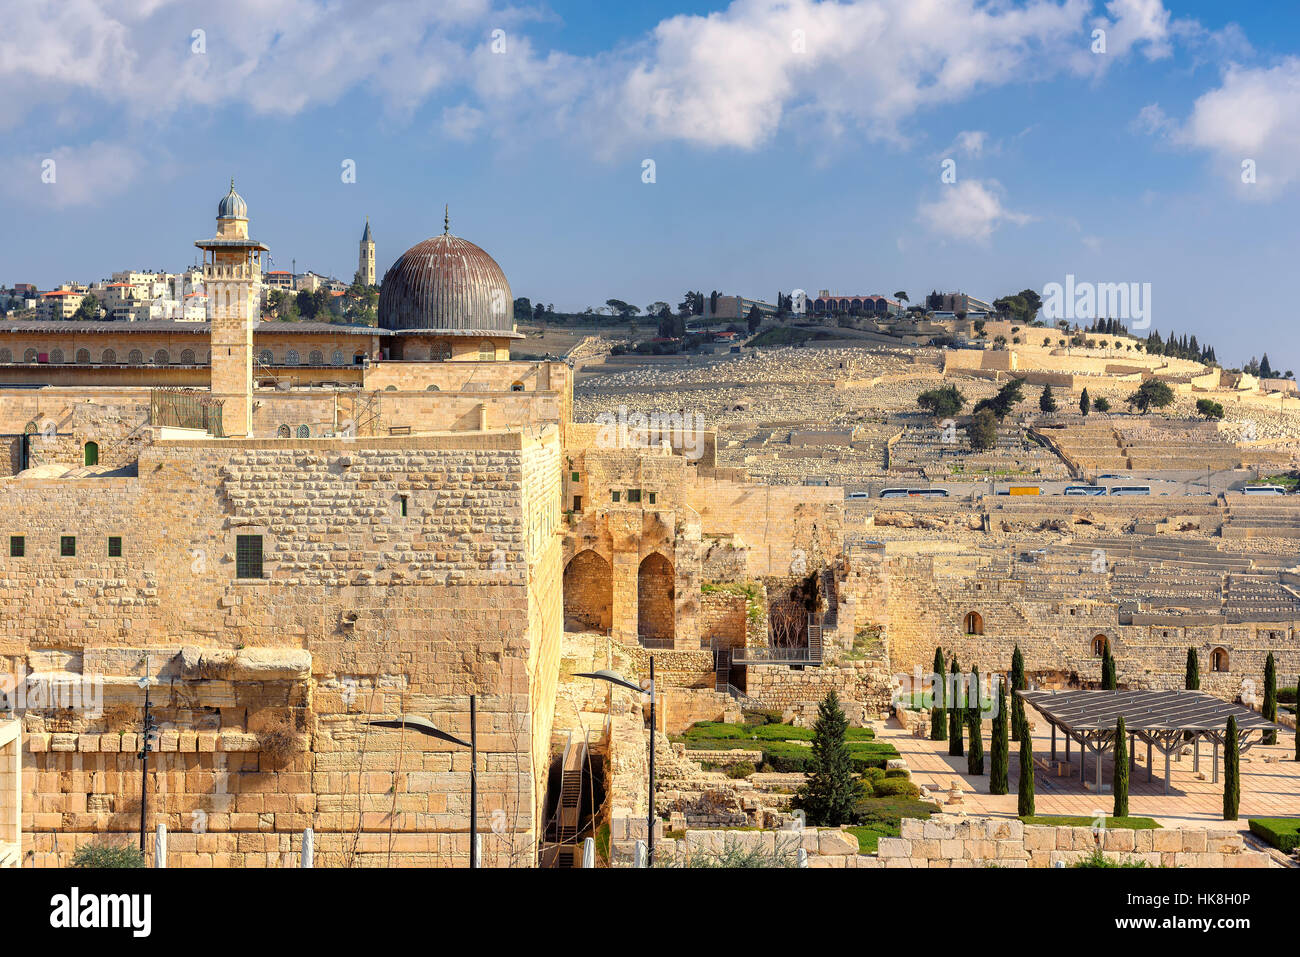 The Temple Mount and Mount of Olives on the horizon in Old Jerusalem, Israel. Stock Photo